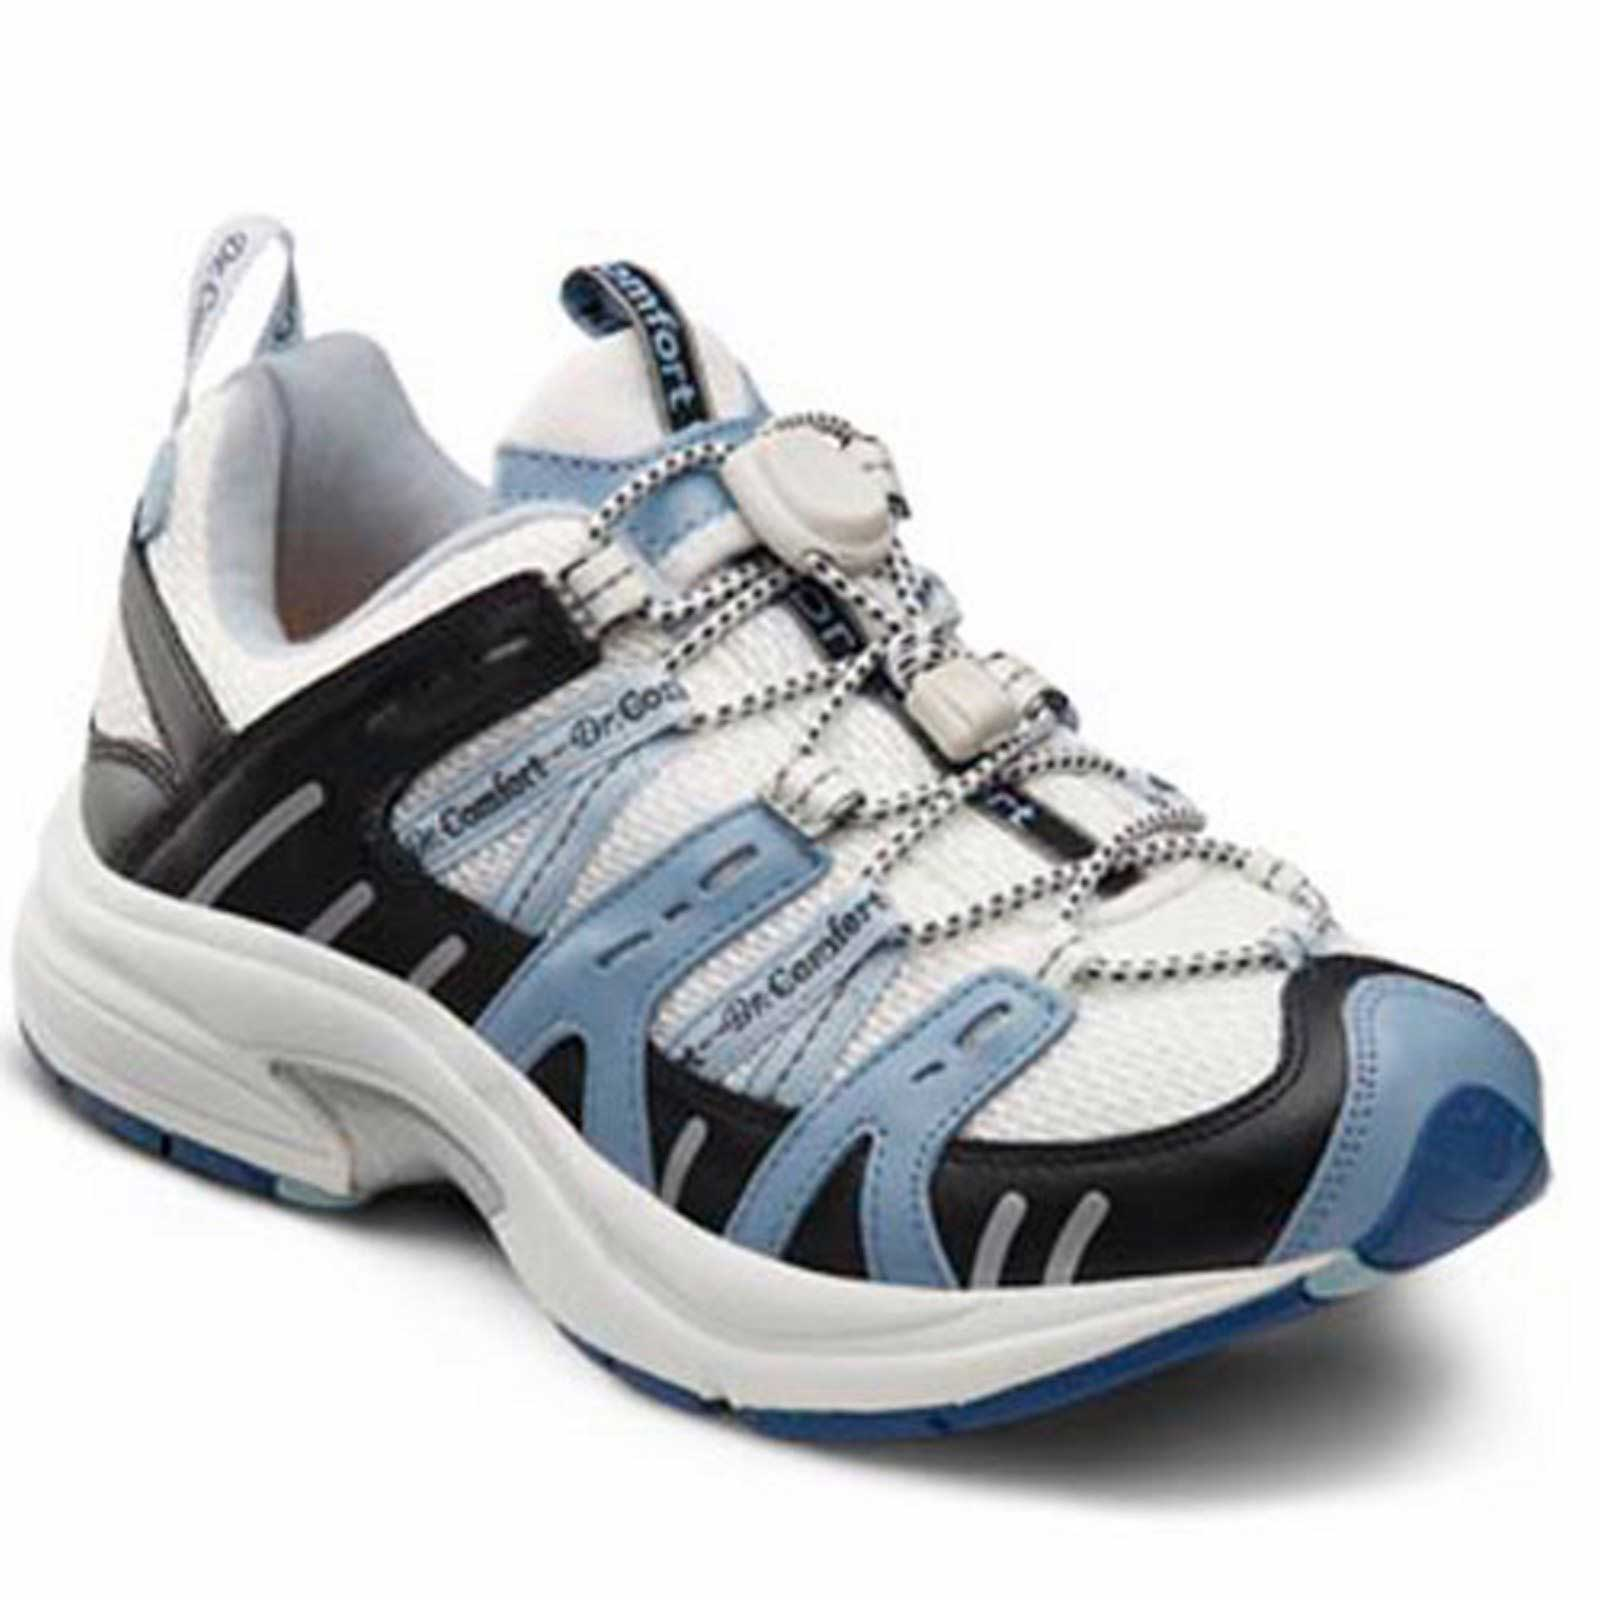 Dr. Comfort - Refresh - Athletic Cross Trainer